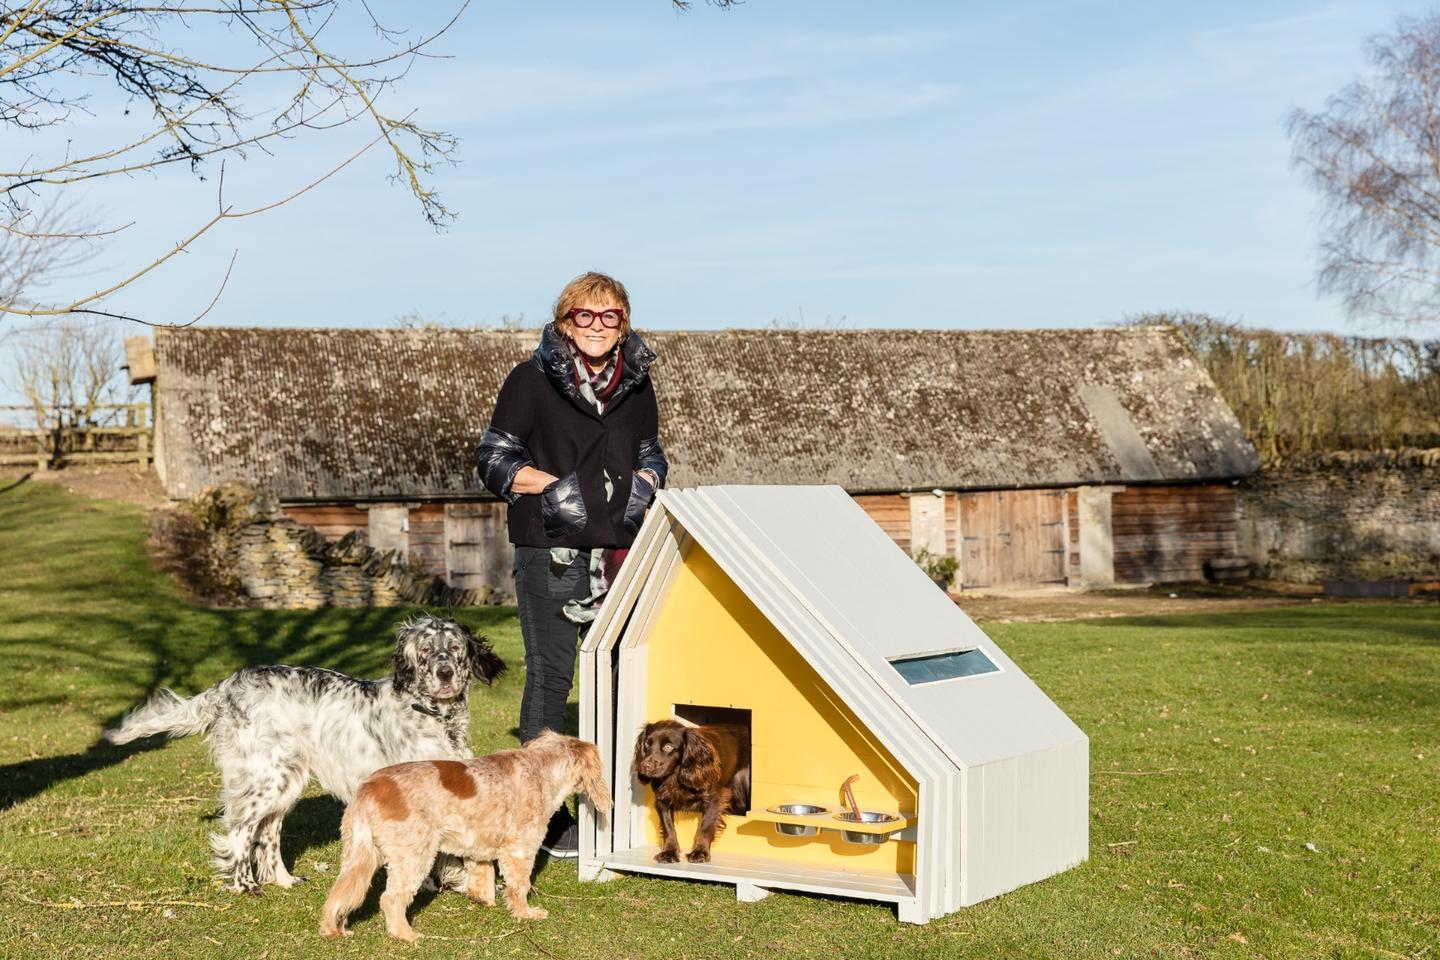 Condy Lofthouse Architectsteamed up with broadcasterAnne Robinson to create thisdoghouse called The Hideaway, whichhas food bowls affixed to its exterior